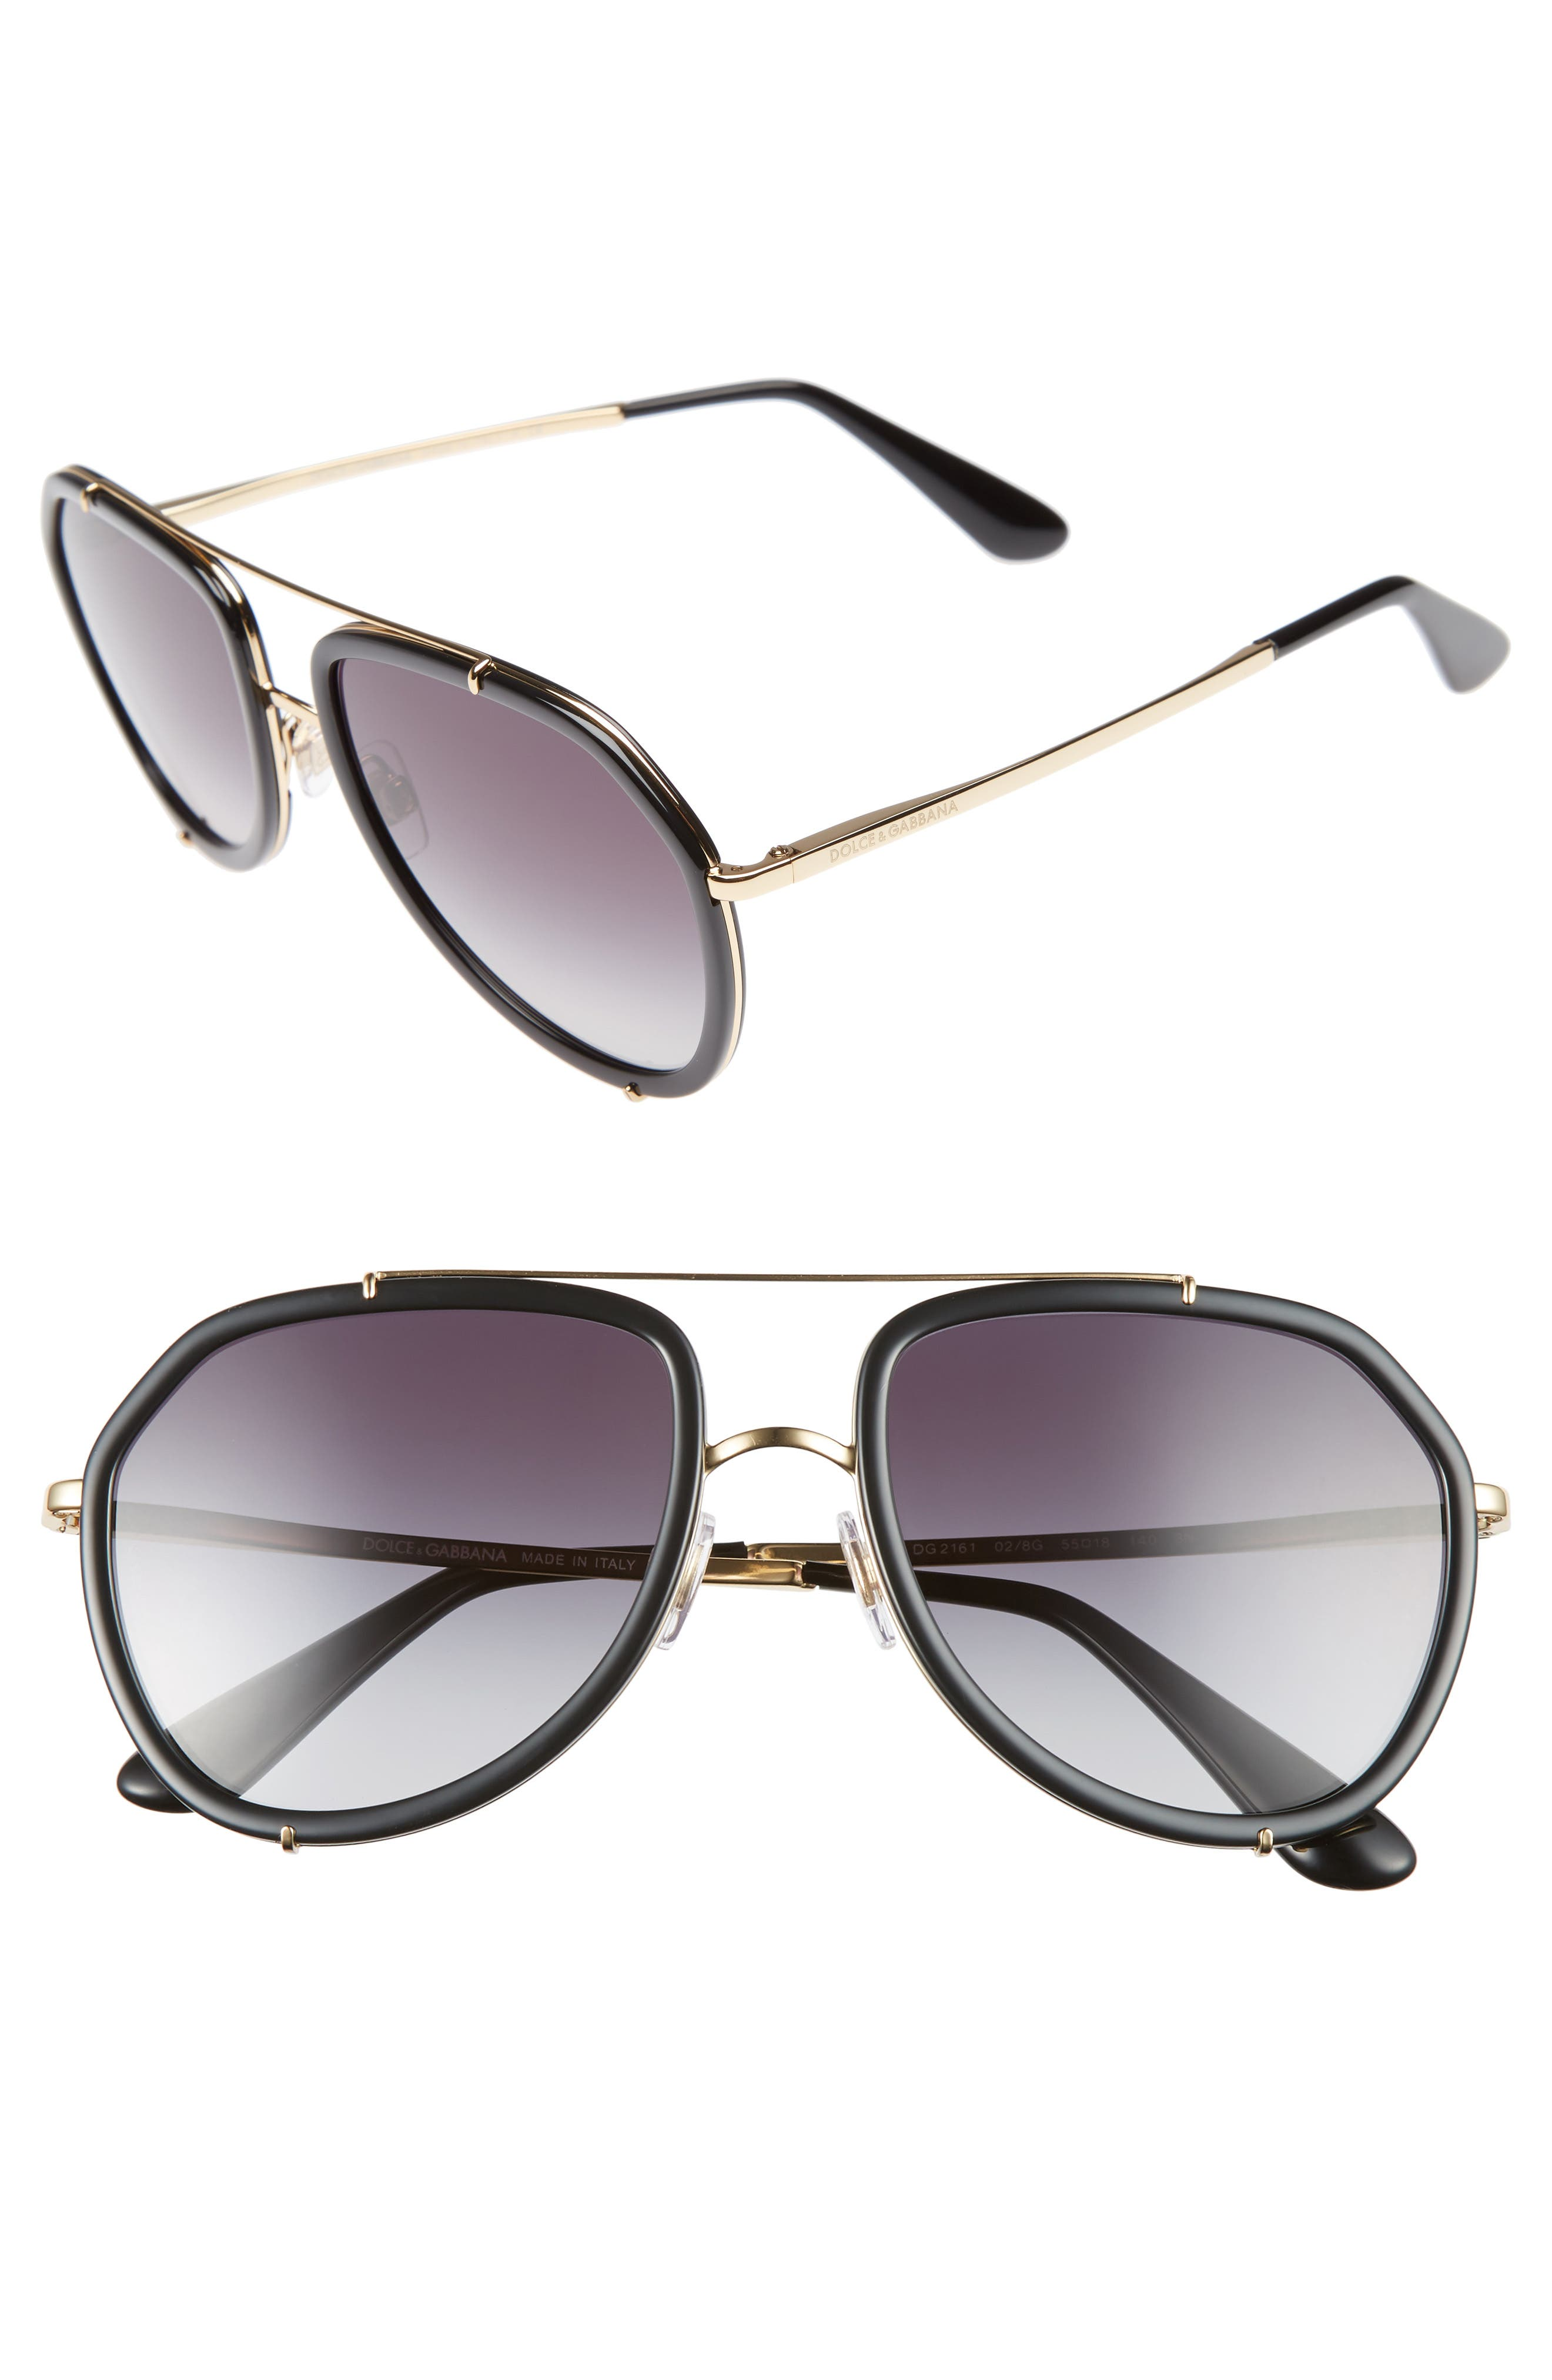 DOLCE&GABBANA 55mm Aviator Sunglasses